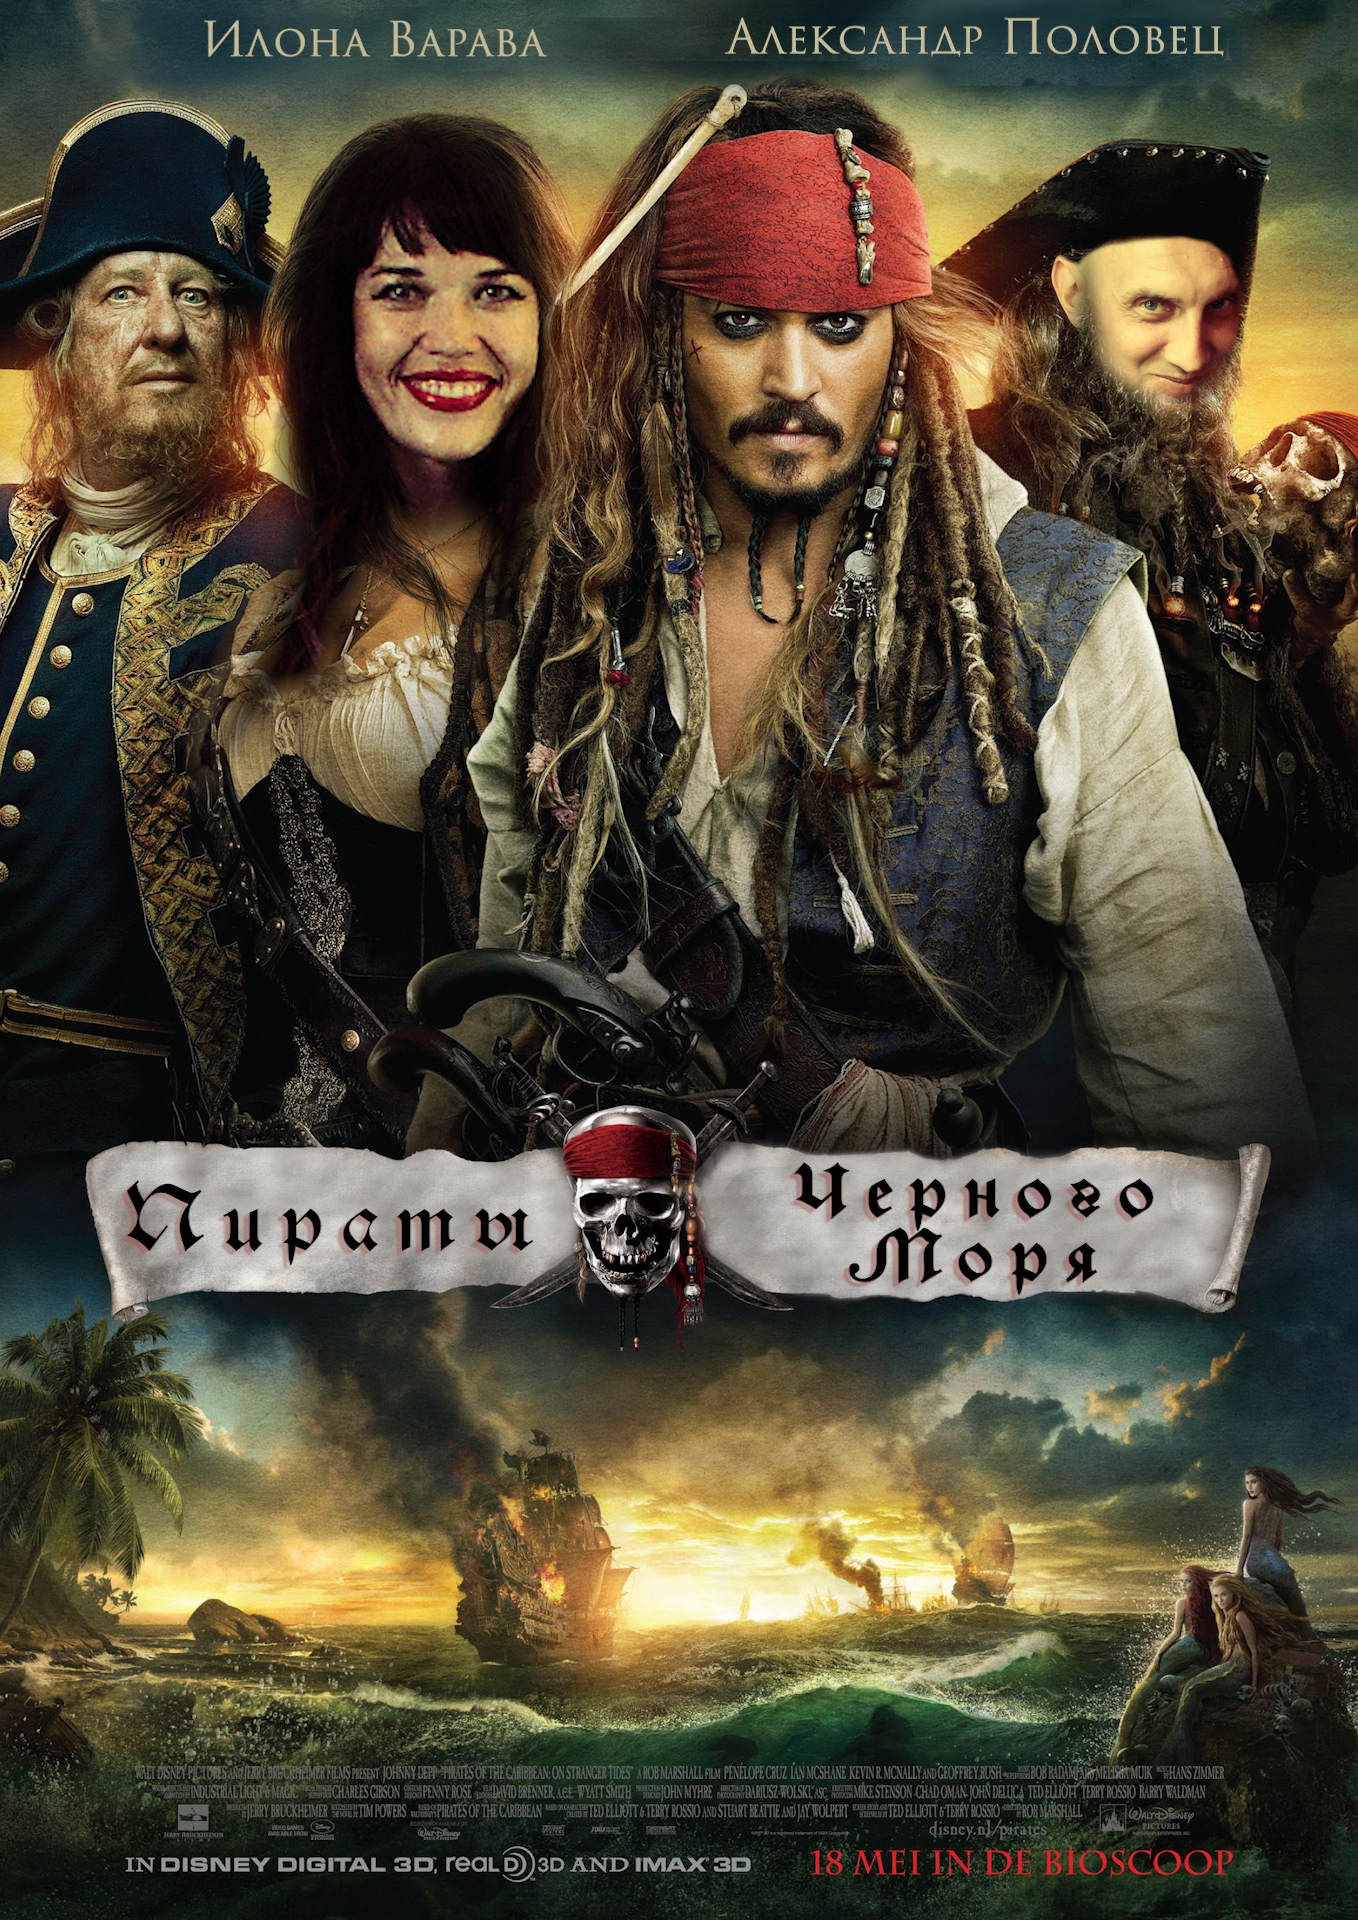 "8 1 - Based on the film poster ""Pirates of the Caribbean: On Stranger Tides"""